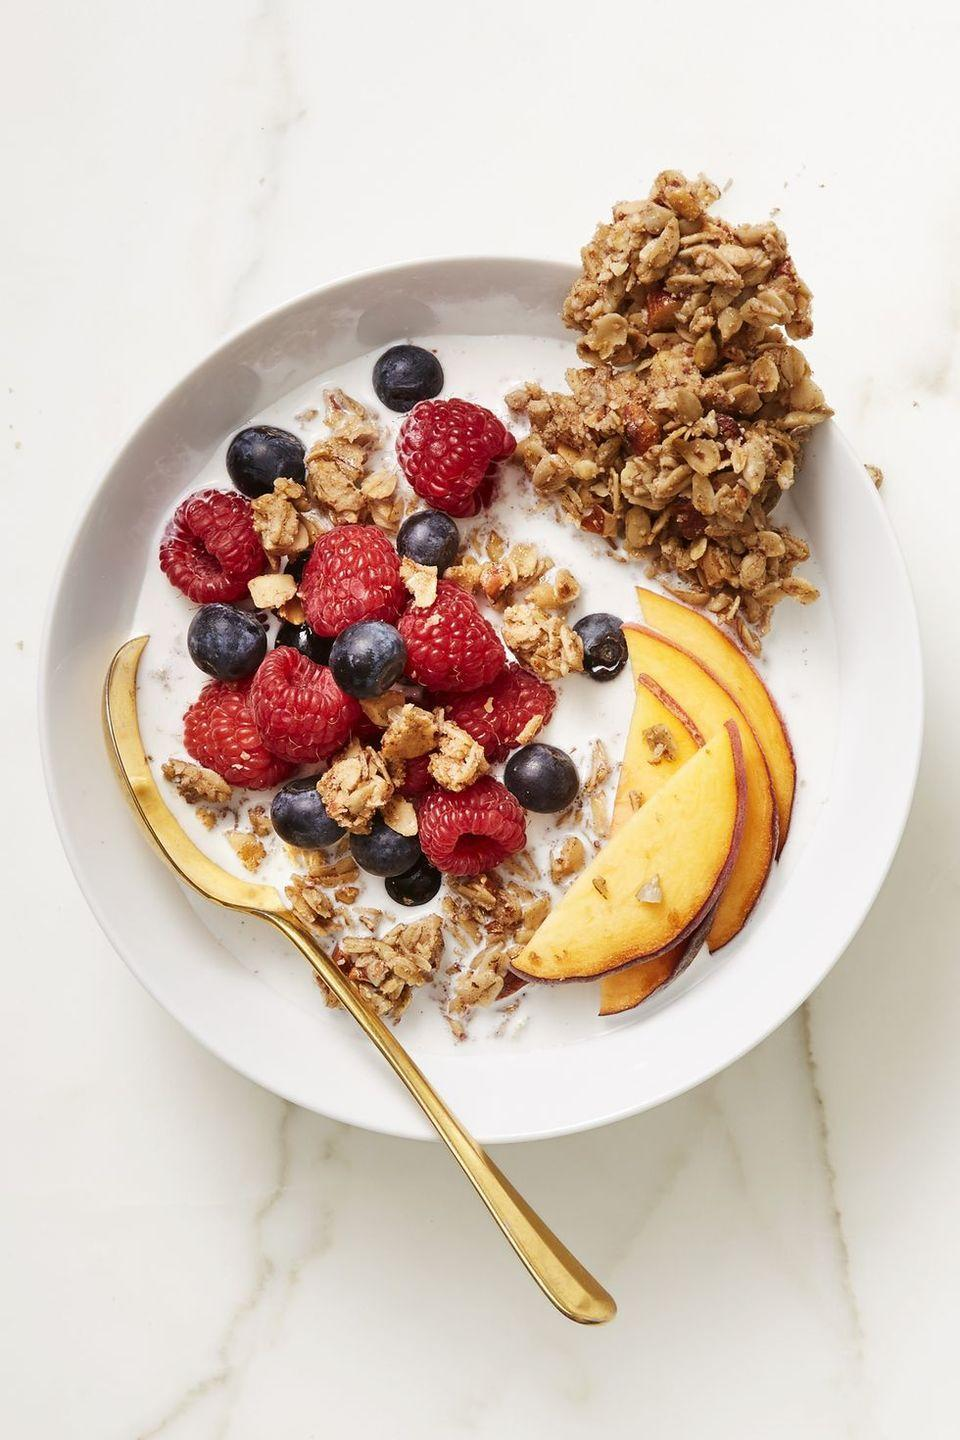 "<p>Milk, yogurt or just on it's own — there are so many ways to eat these sweet, maple granola.<br></p><p><em><a href=""https://www.goodhousekeeping.com/food-recipes/easy/a45235/sweet-salty-maple-granola-bark-recipe/"" rel=""nofollow noopener"" target=""_blank"" data-ylk=""slk:Get the recipe for Sweet and Salty Maple Granola Bark »"" class=""link rapid-noclick-resp"">Get the recipe for Sweet and Salty Maple Granola Bark »</a></em></p>"